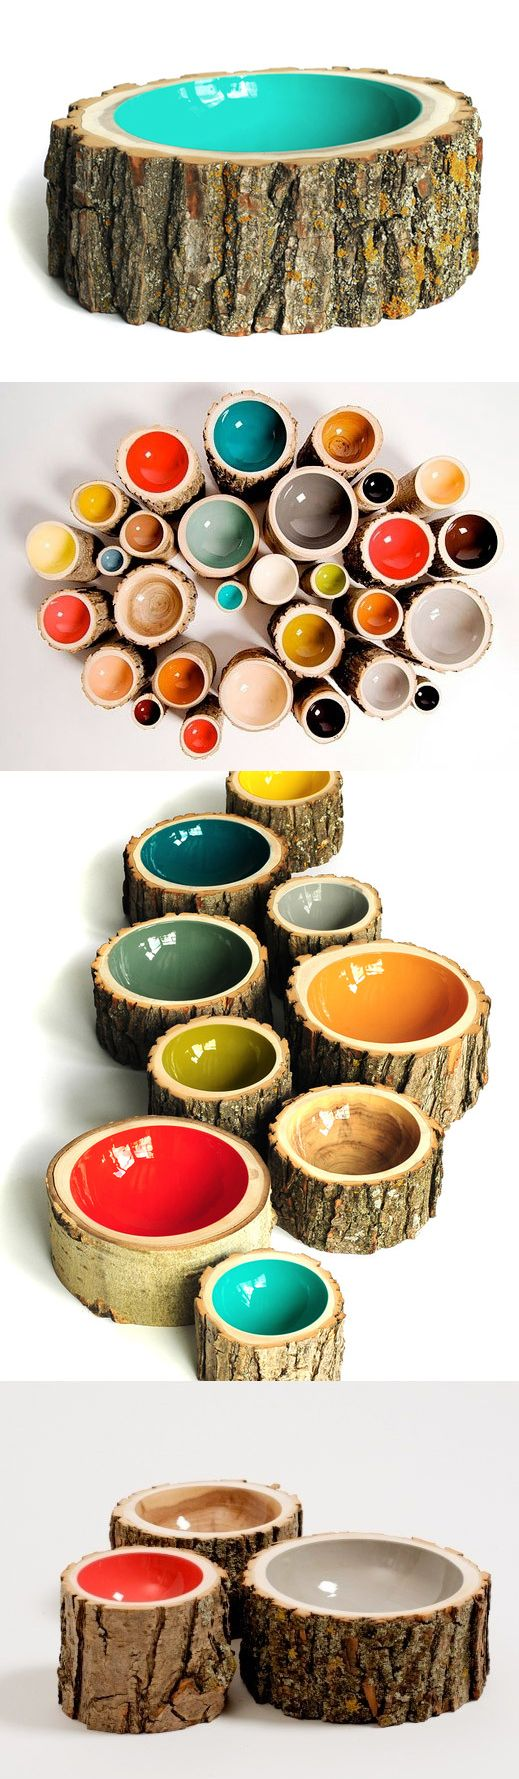 Log Bowls // Made of reclaimed logs with a colorful gloss interior... stunning #product_design